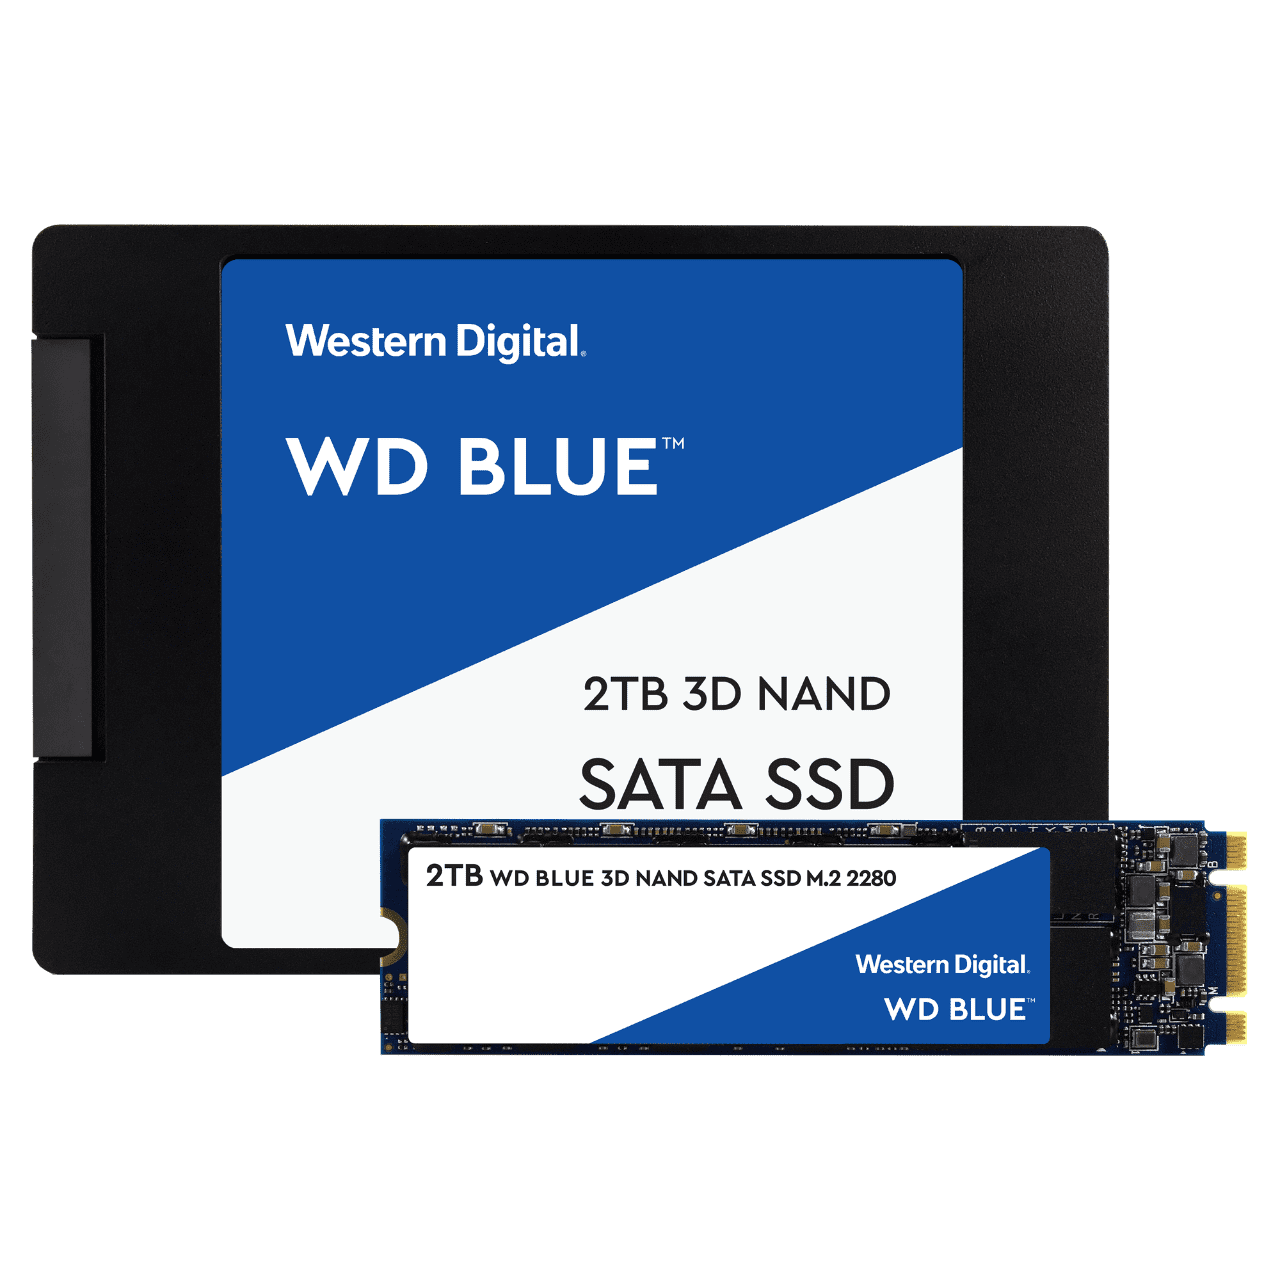 product-hero-image-wd-blue-3d-nand-sata-ssd-western-digital